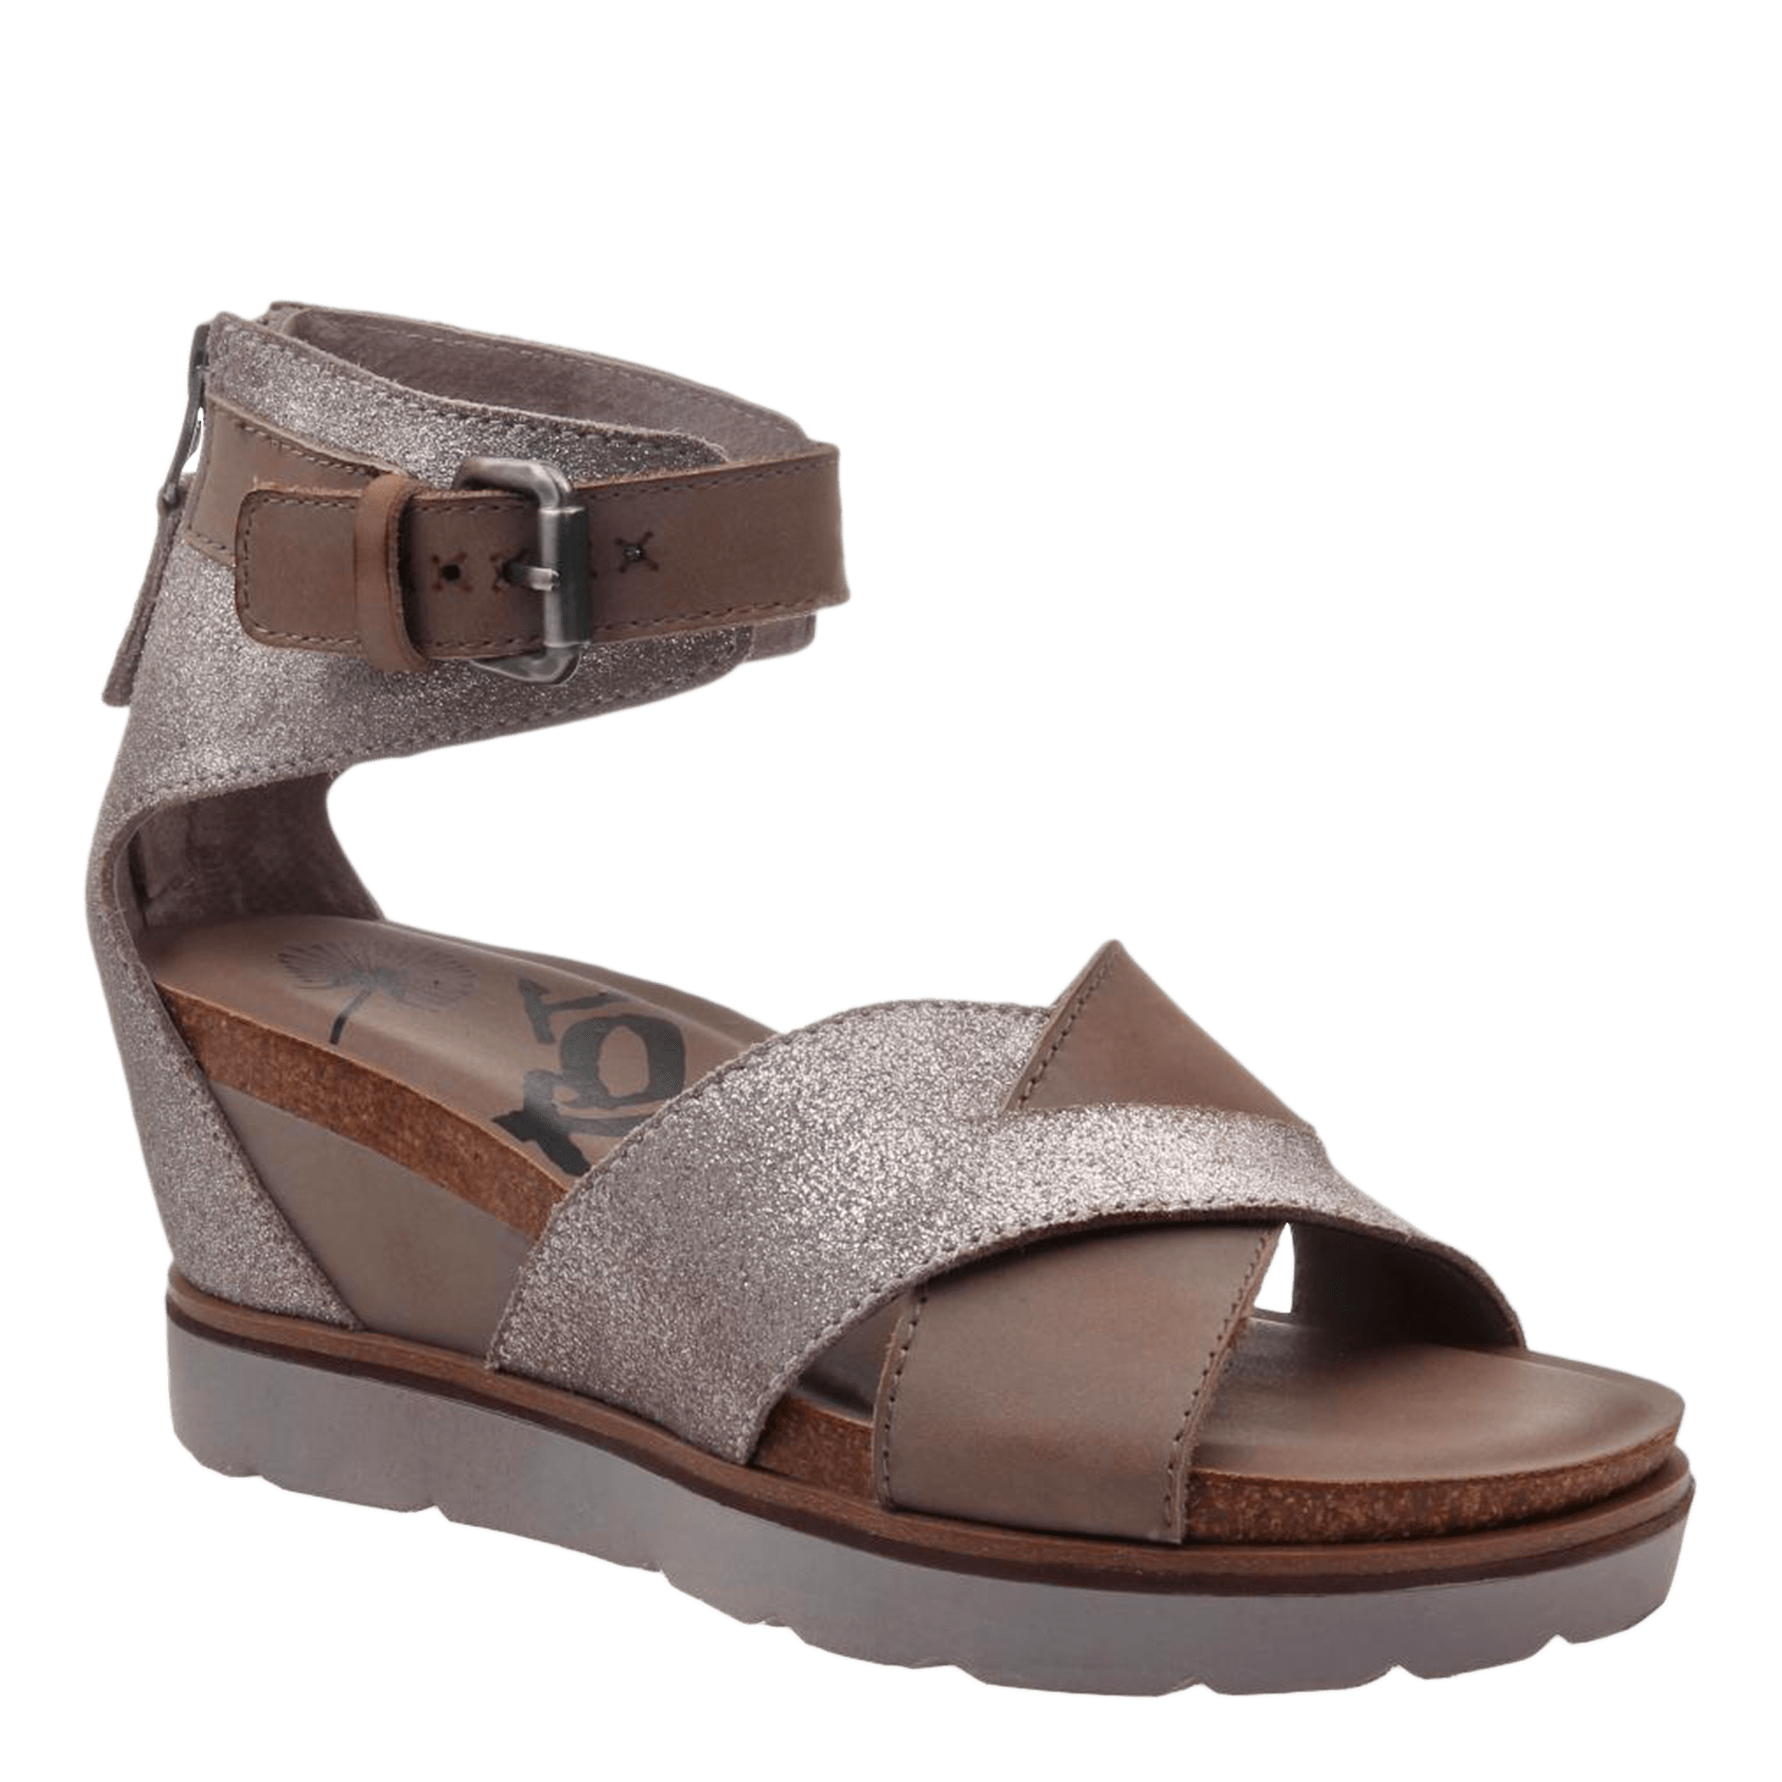 4ec8084acdf45 Teamwork in Grey Silver Wedge Sandals | Women's Shoes by OTBT